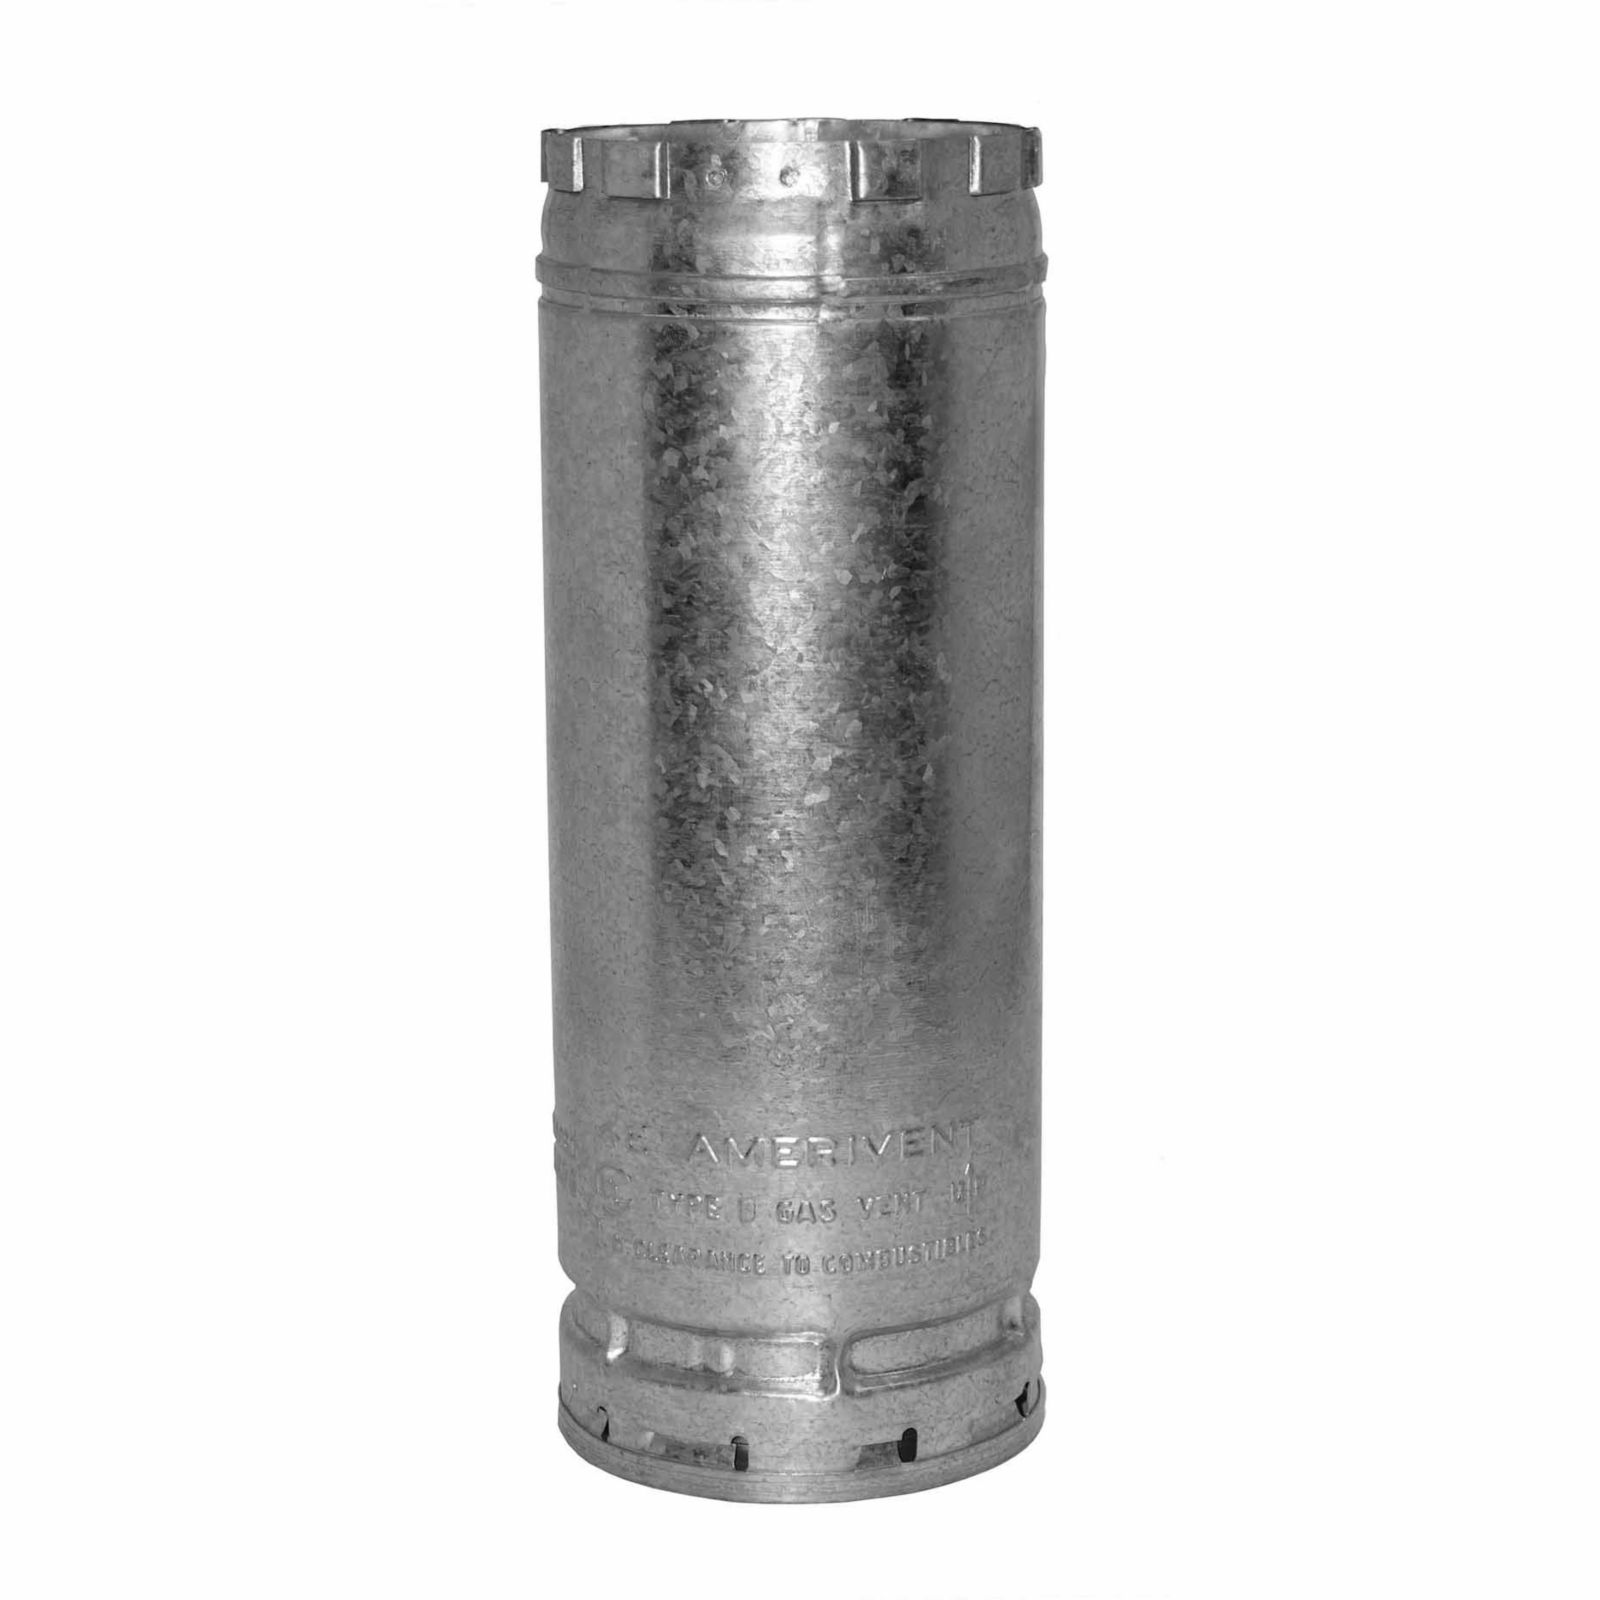 "AmeriVent 3E24 - Pipe Section Type B Gas Vent, 3"" Round X 24"" Length"